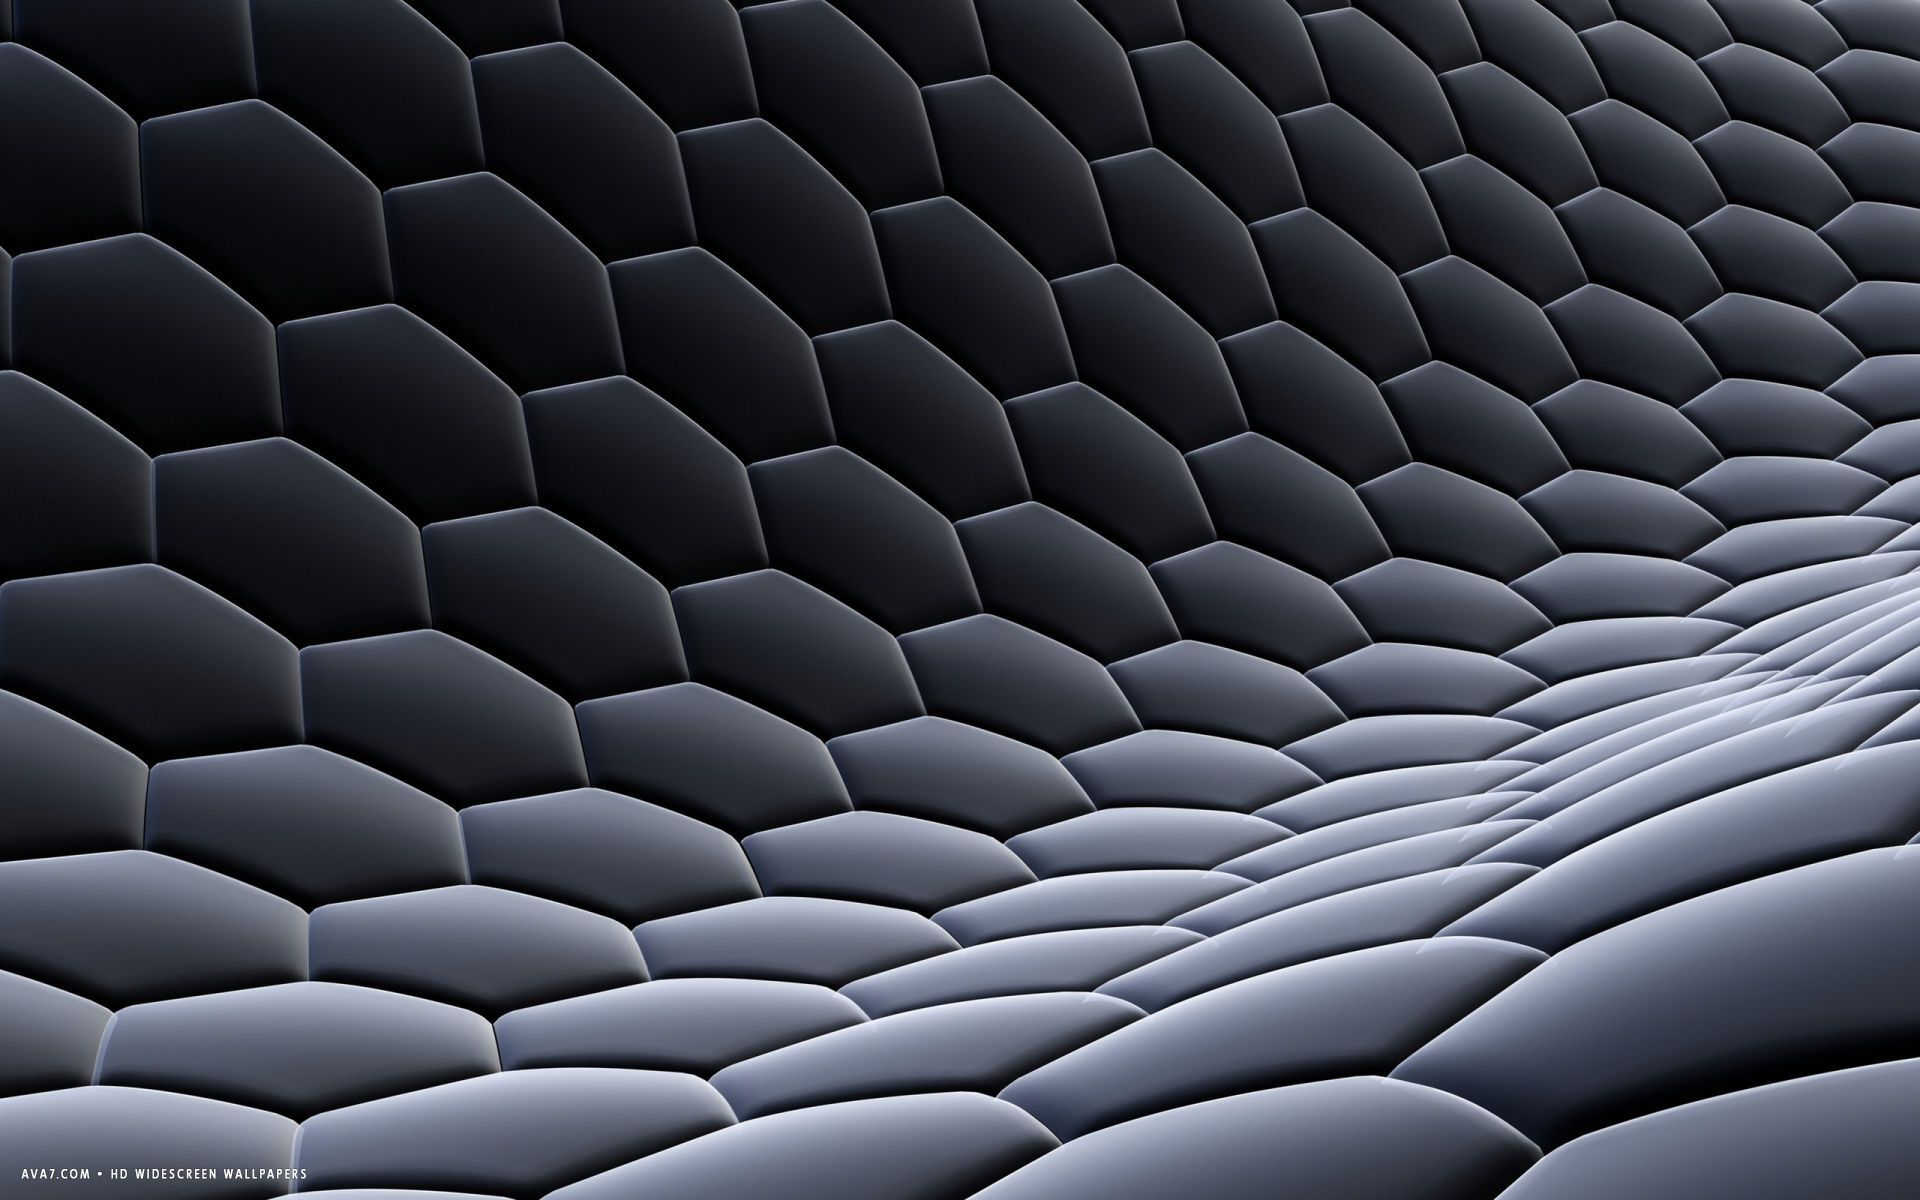 3d Hexagon Texture Fabric Steel Gray Grid Honeycomb Jpg 1920 1200 Background Hd Wallpaper Black Abstract Background Abstract